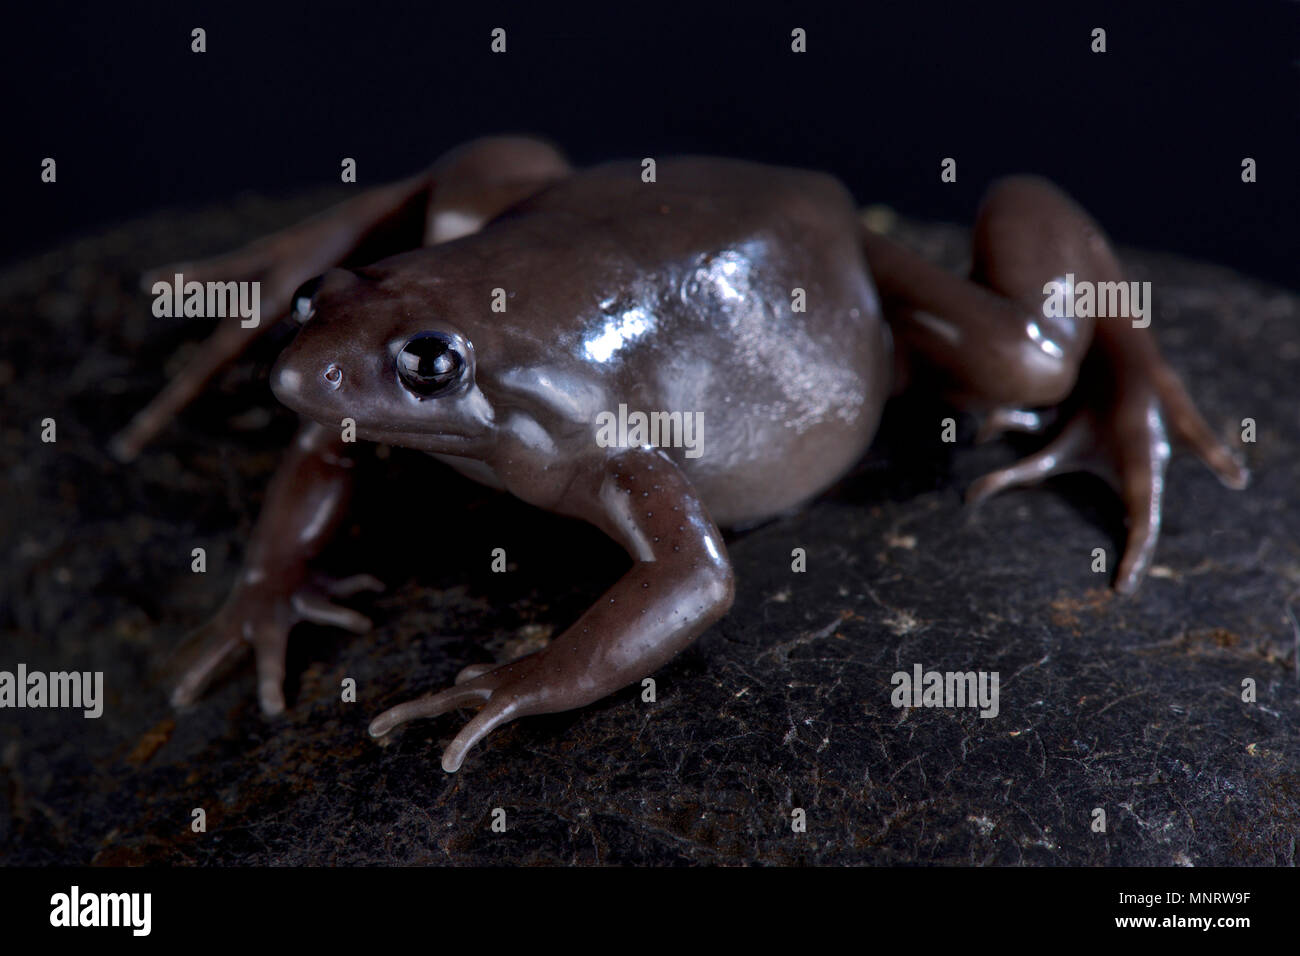 The Costa Rica Nelson frog (Ctenophryne aterrima) is a robust, terrestrial and nocturnal black frog species found in Panama,Costa Rica and Ecuador. - Stock Image